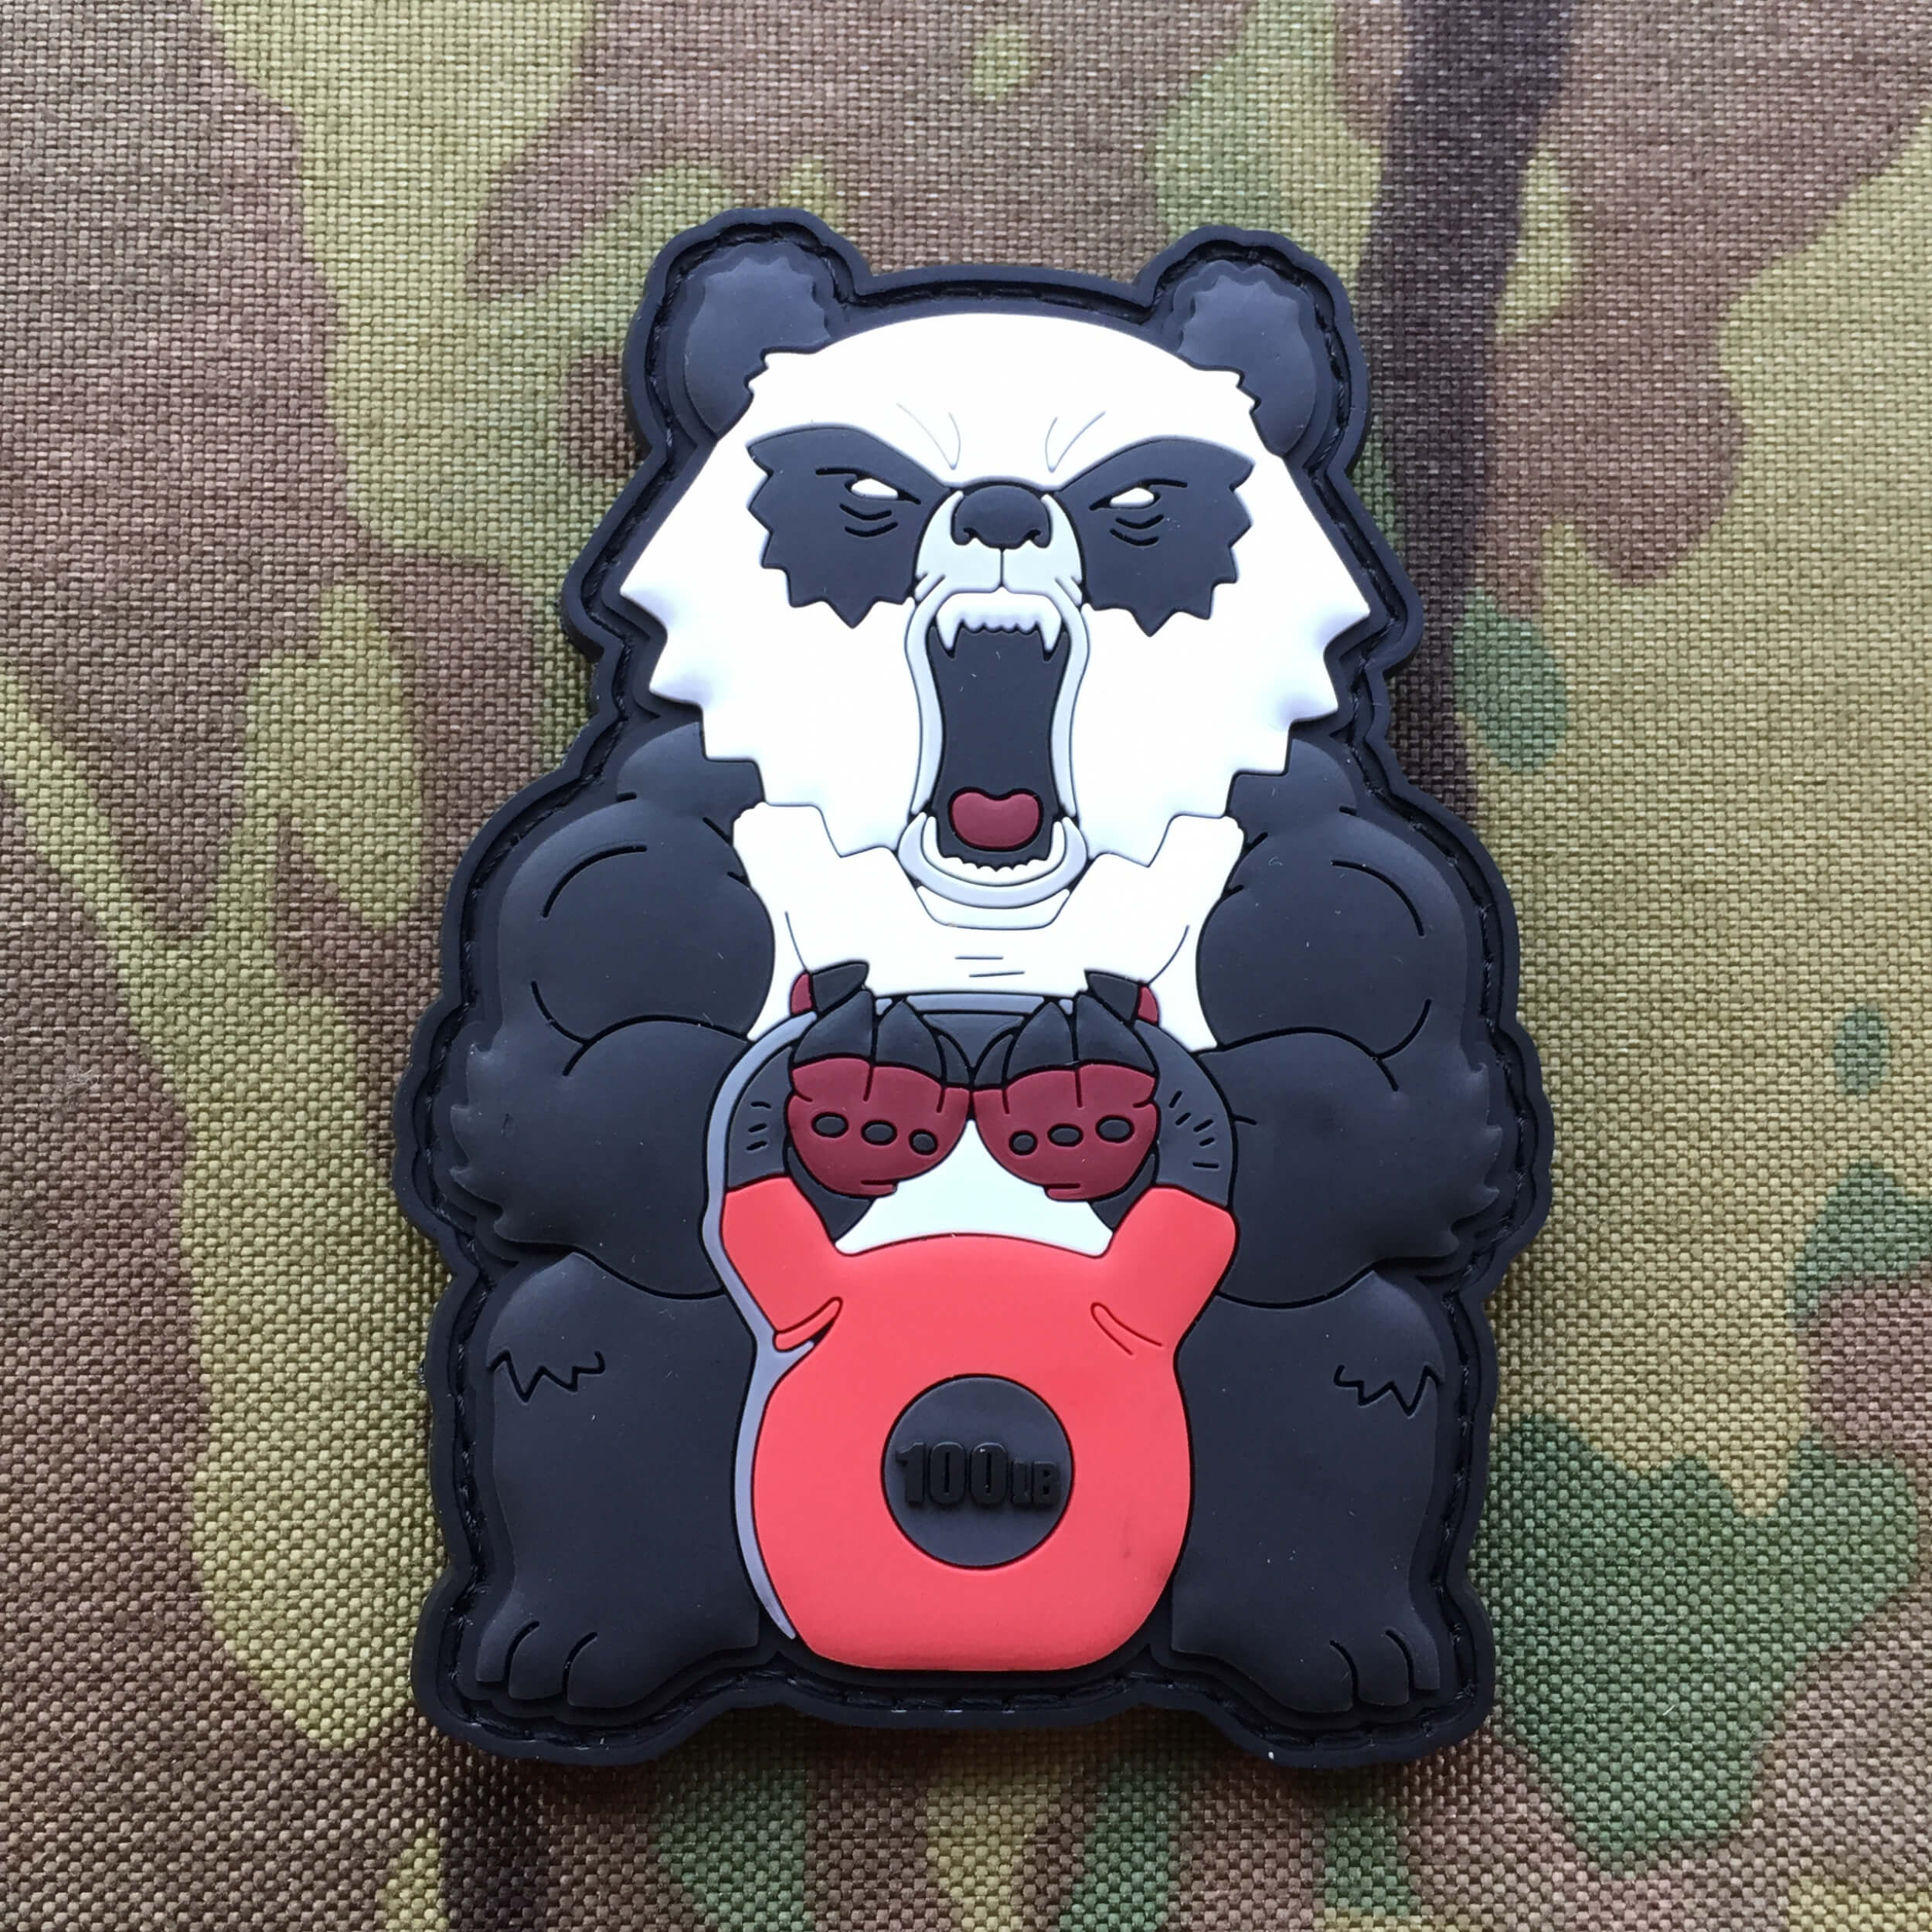 Angry Fitness Panda Kettlebell 100lb 3D PVC Patch